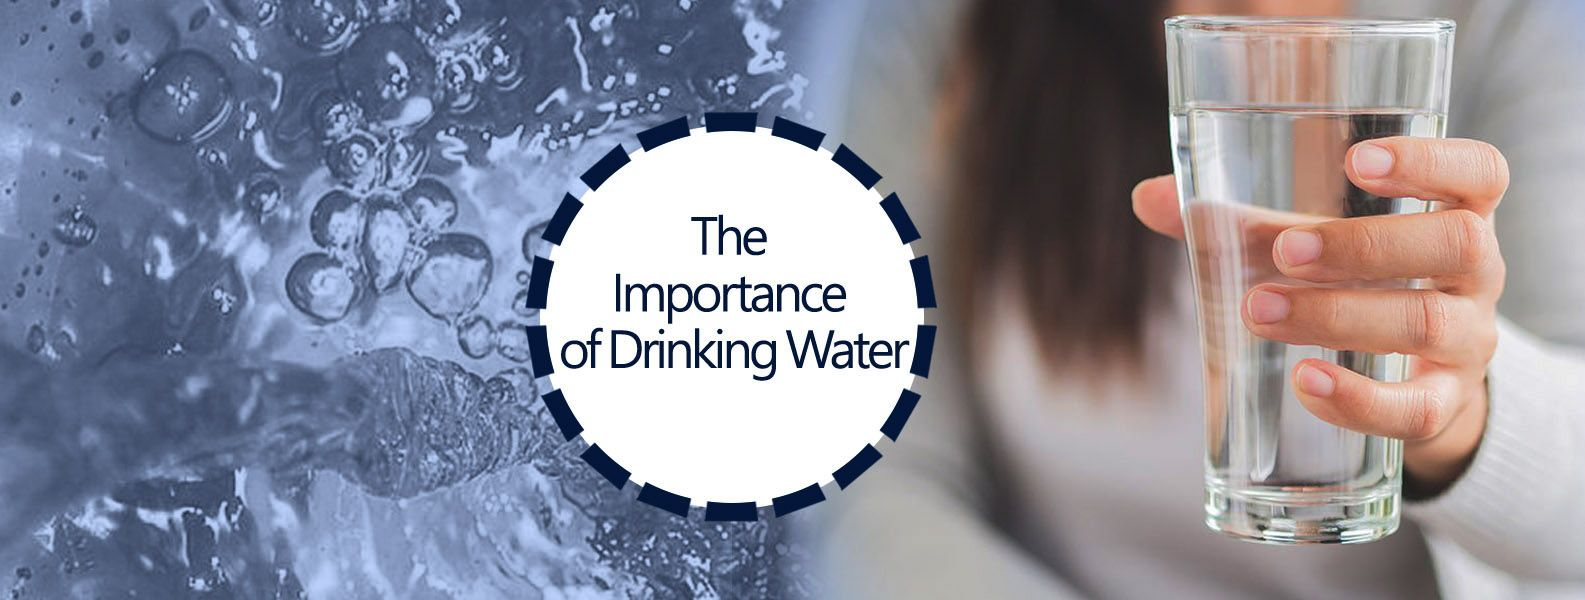 THE IMPORTANCE OF DRINKING WATER – DRINKING WATER FOR HEALTH